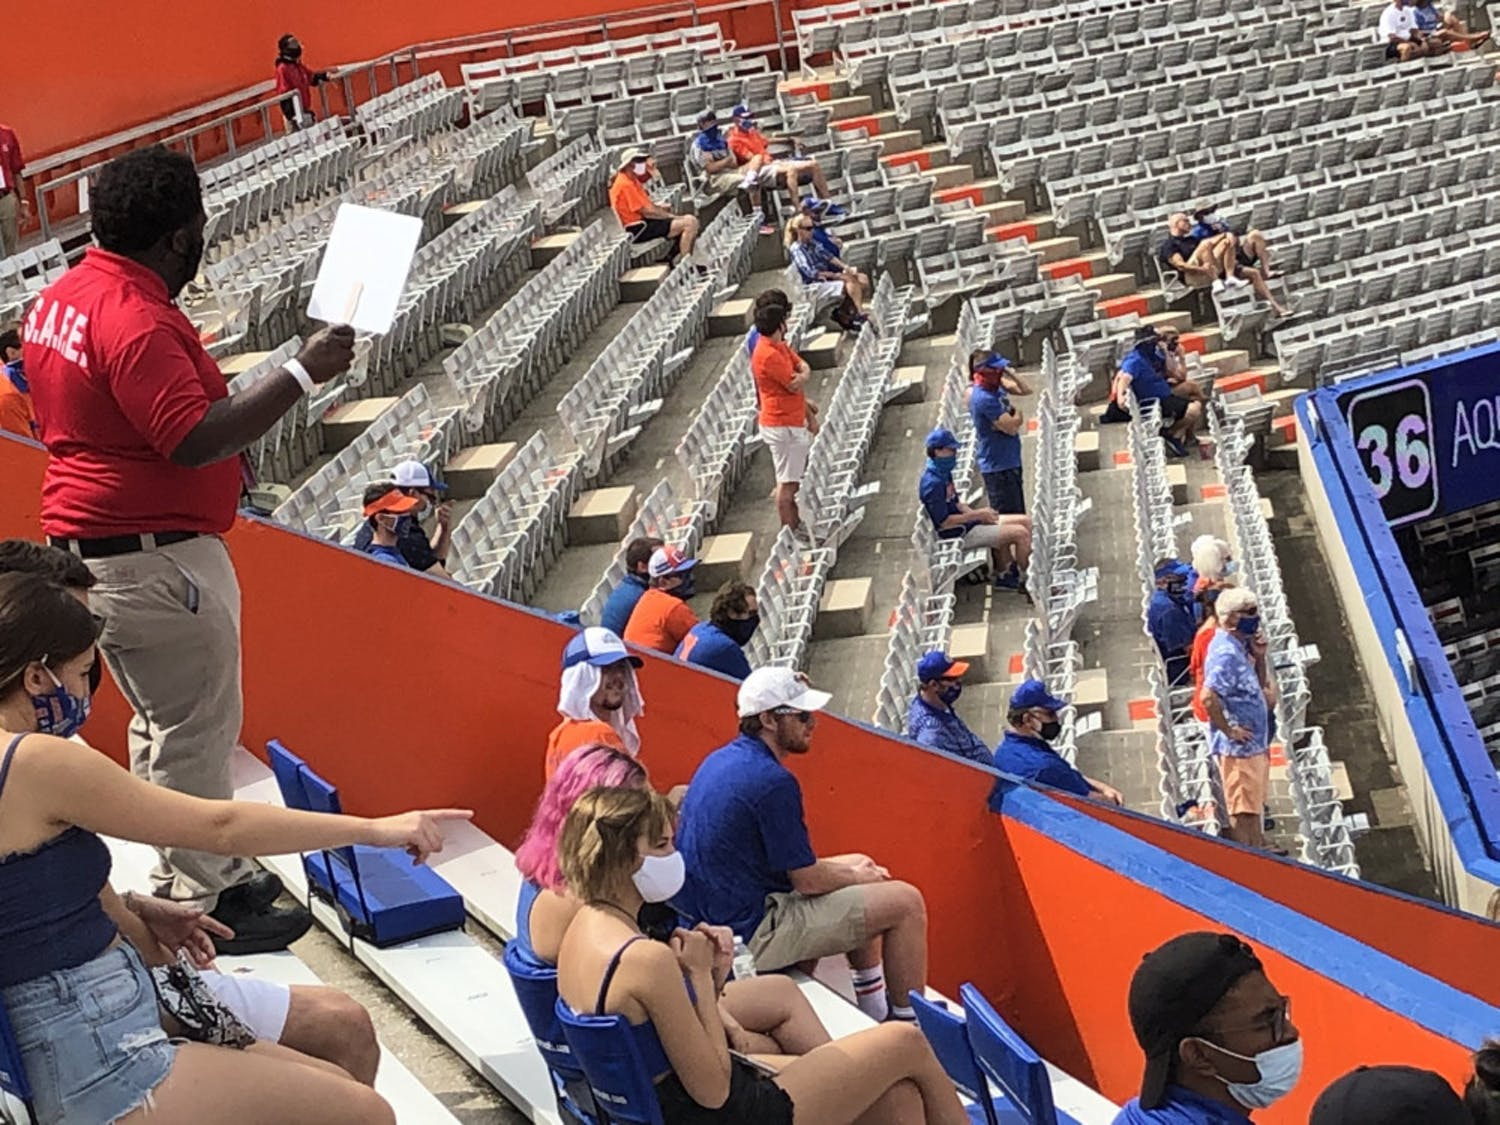 A S.A.F.E. staff member instructs fans in the student section to put on their masks at Saturday's home opener in Ben Hill Griffin Stadium.